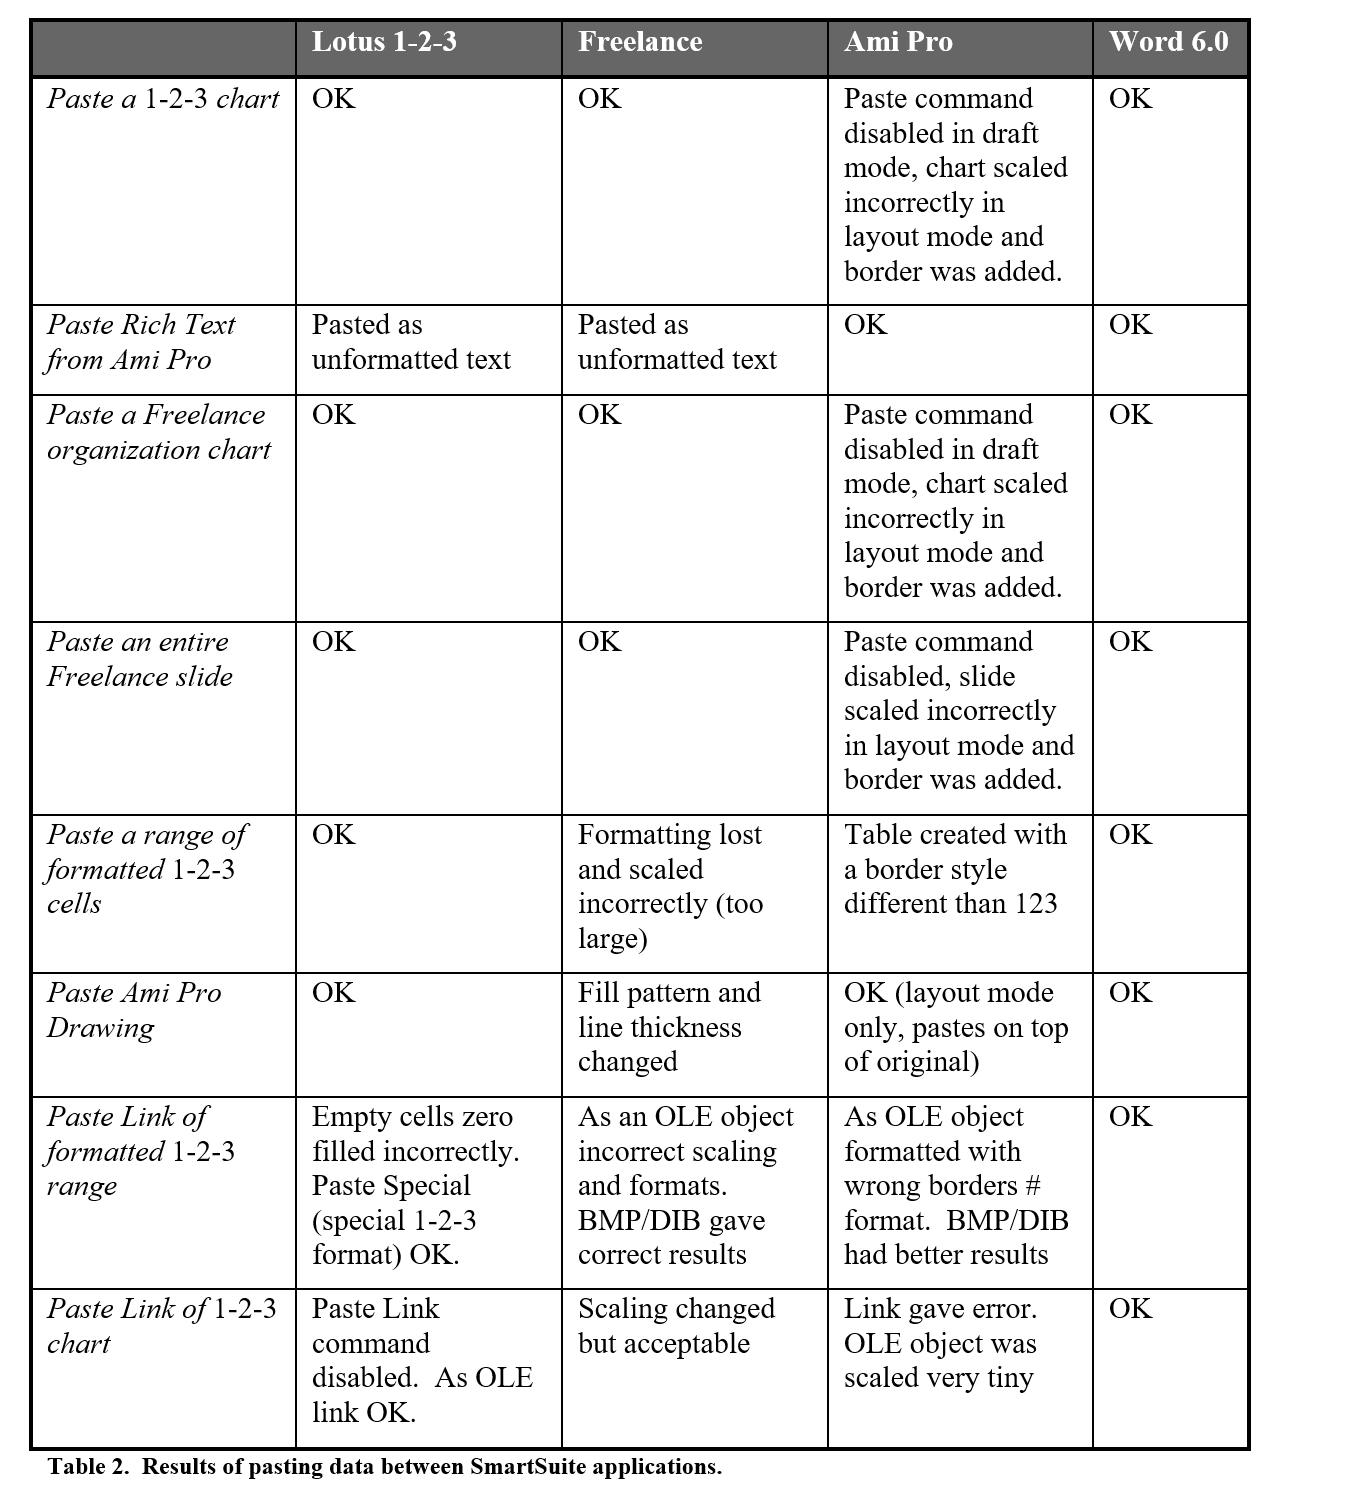 Table of cutting and pasting content between applications